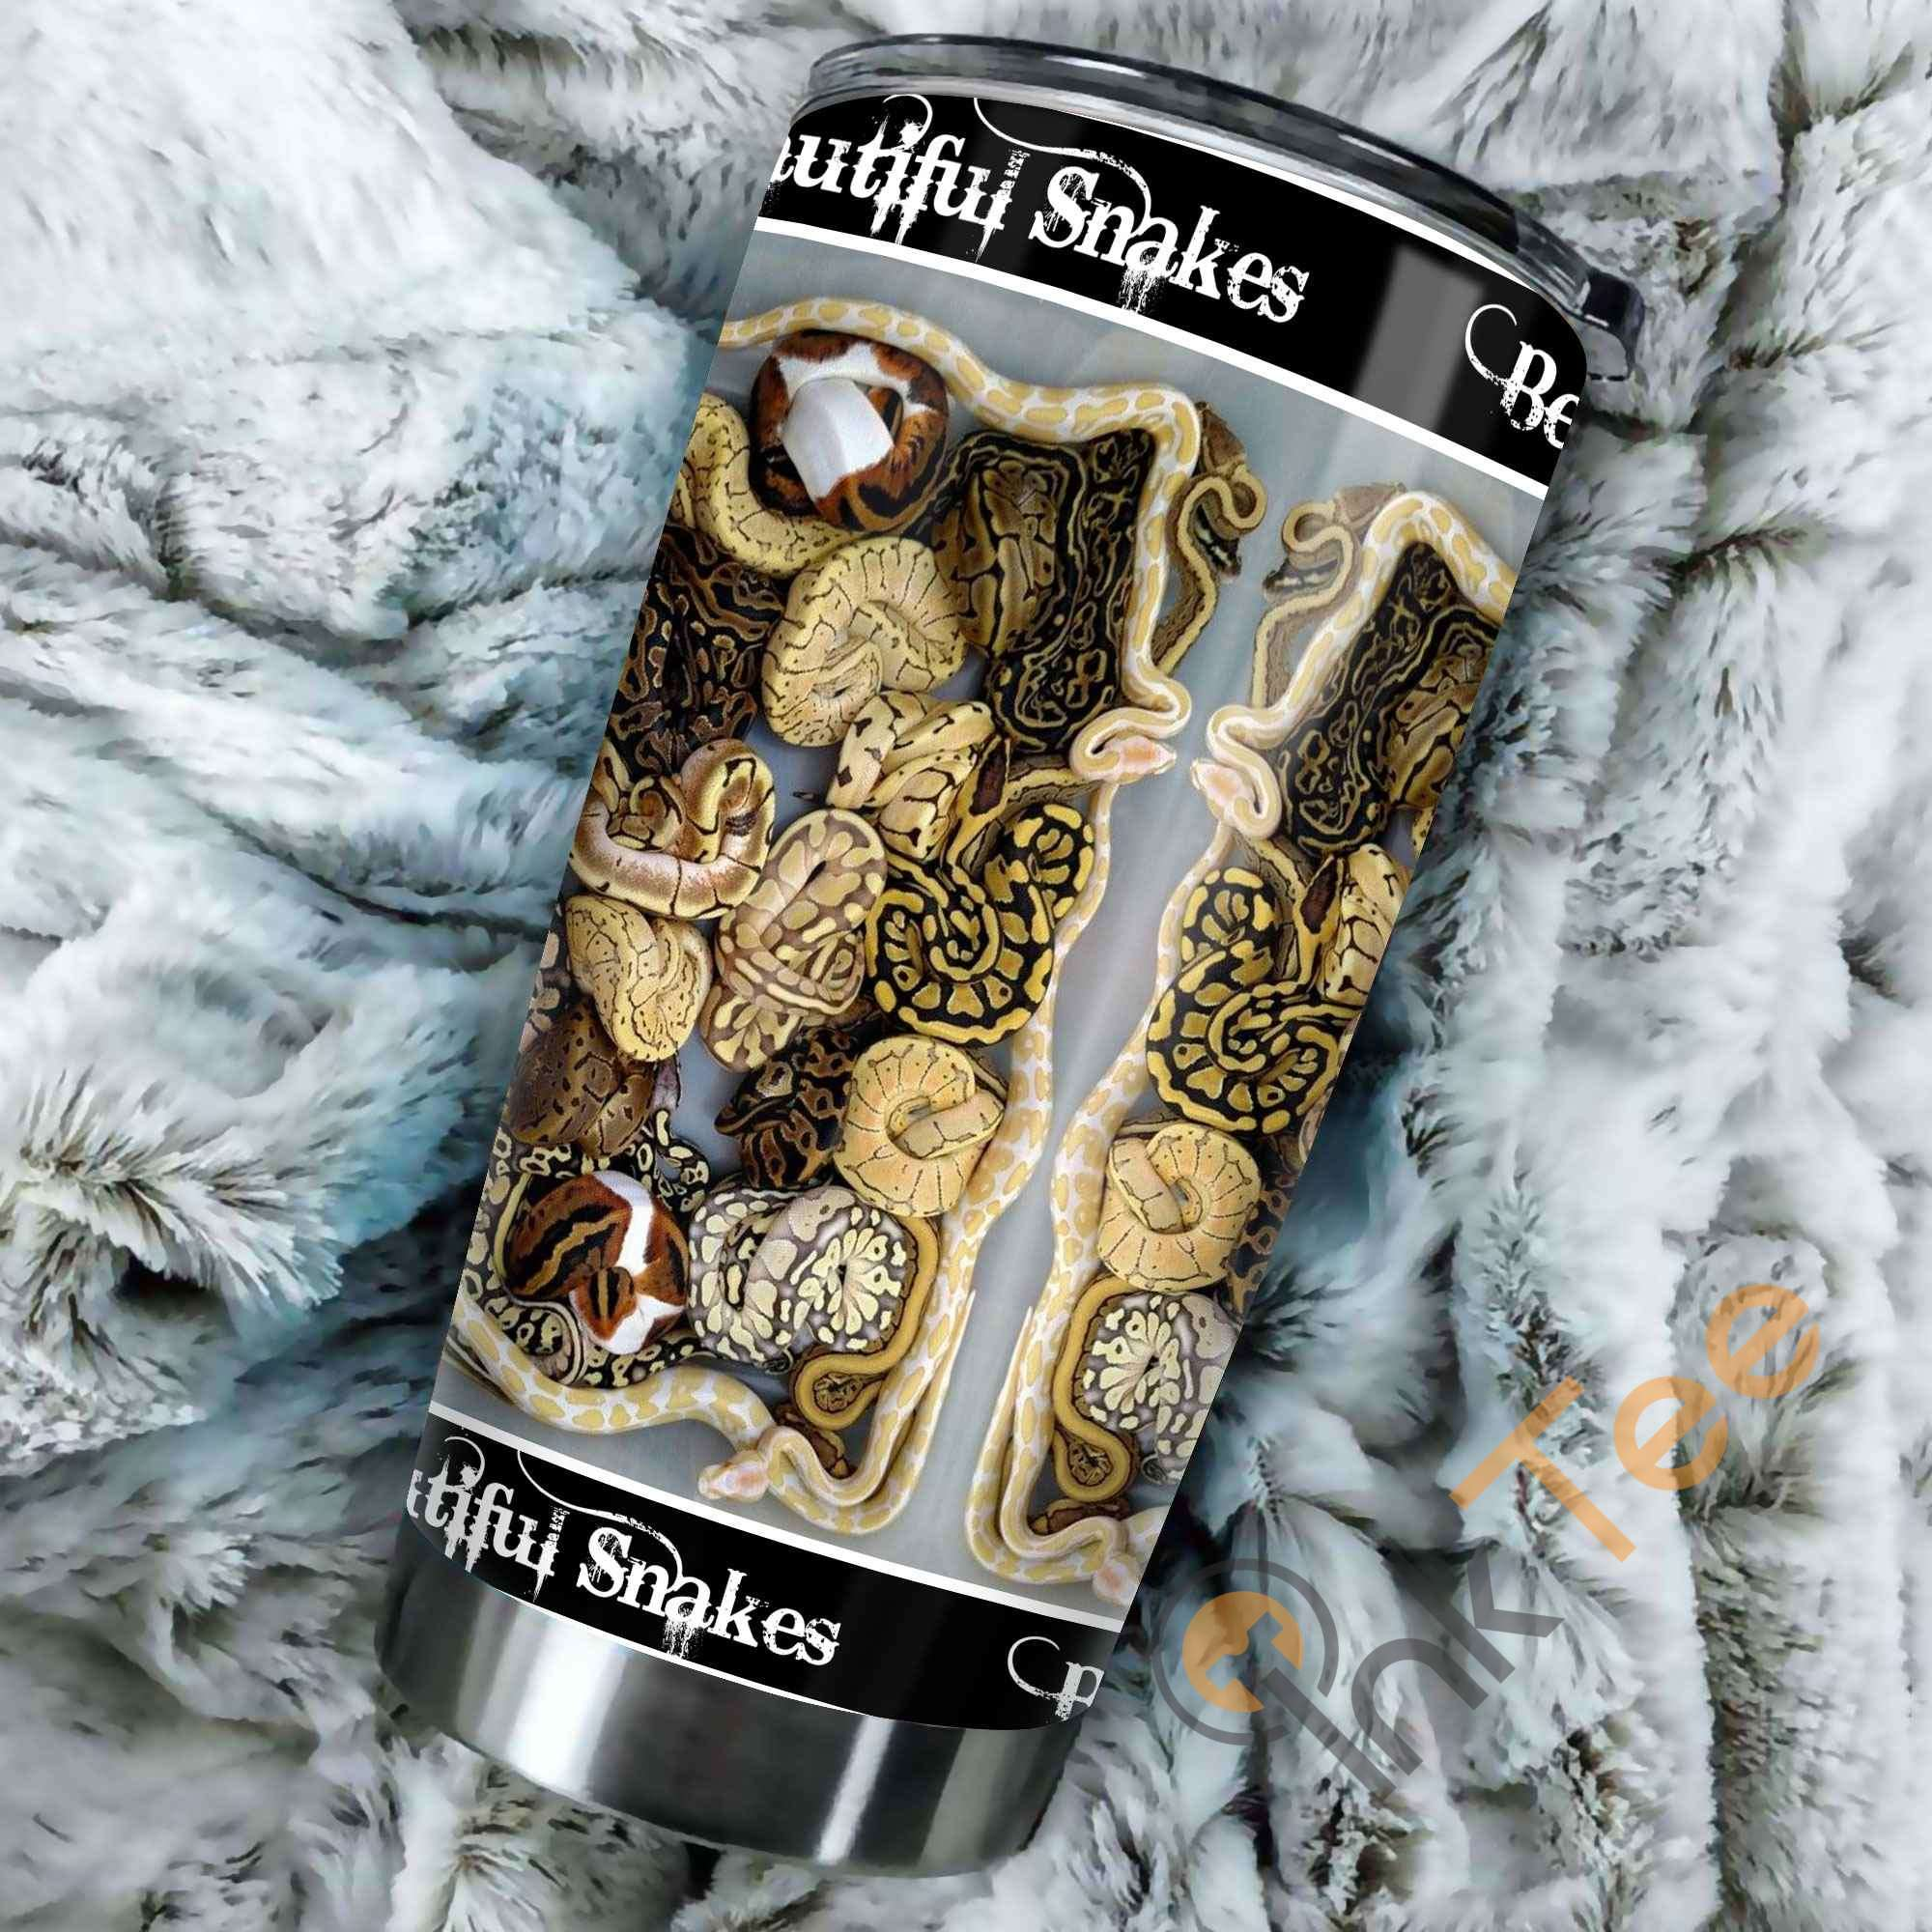 Beautiful Snakes Stainless Steel Tumbler